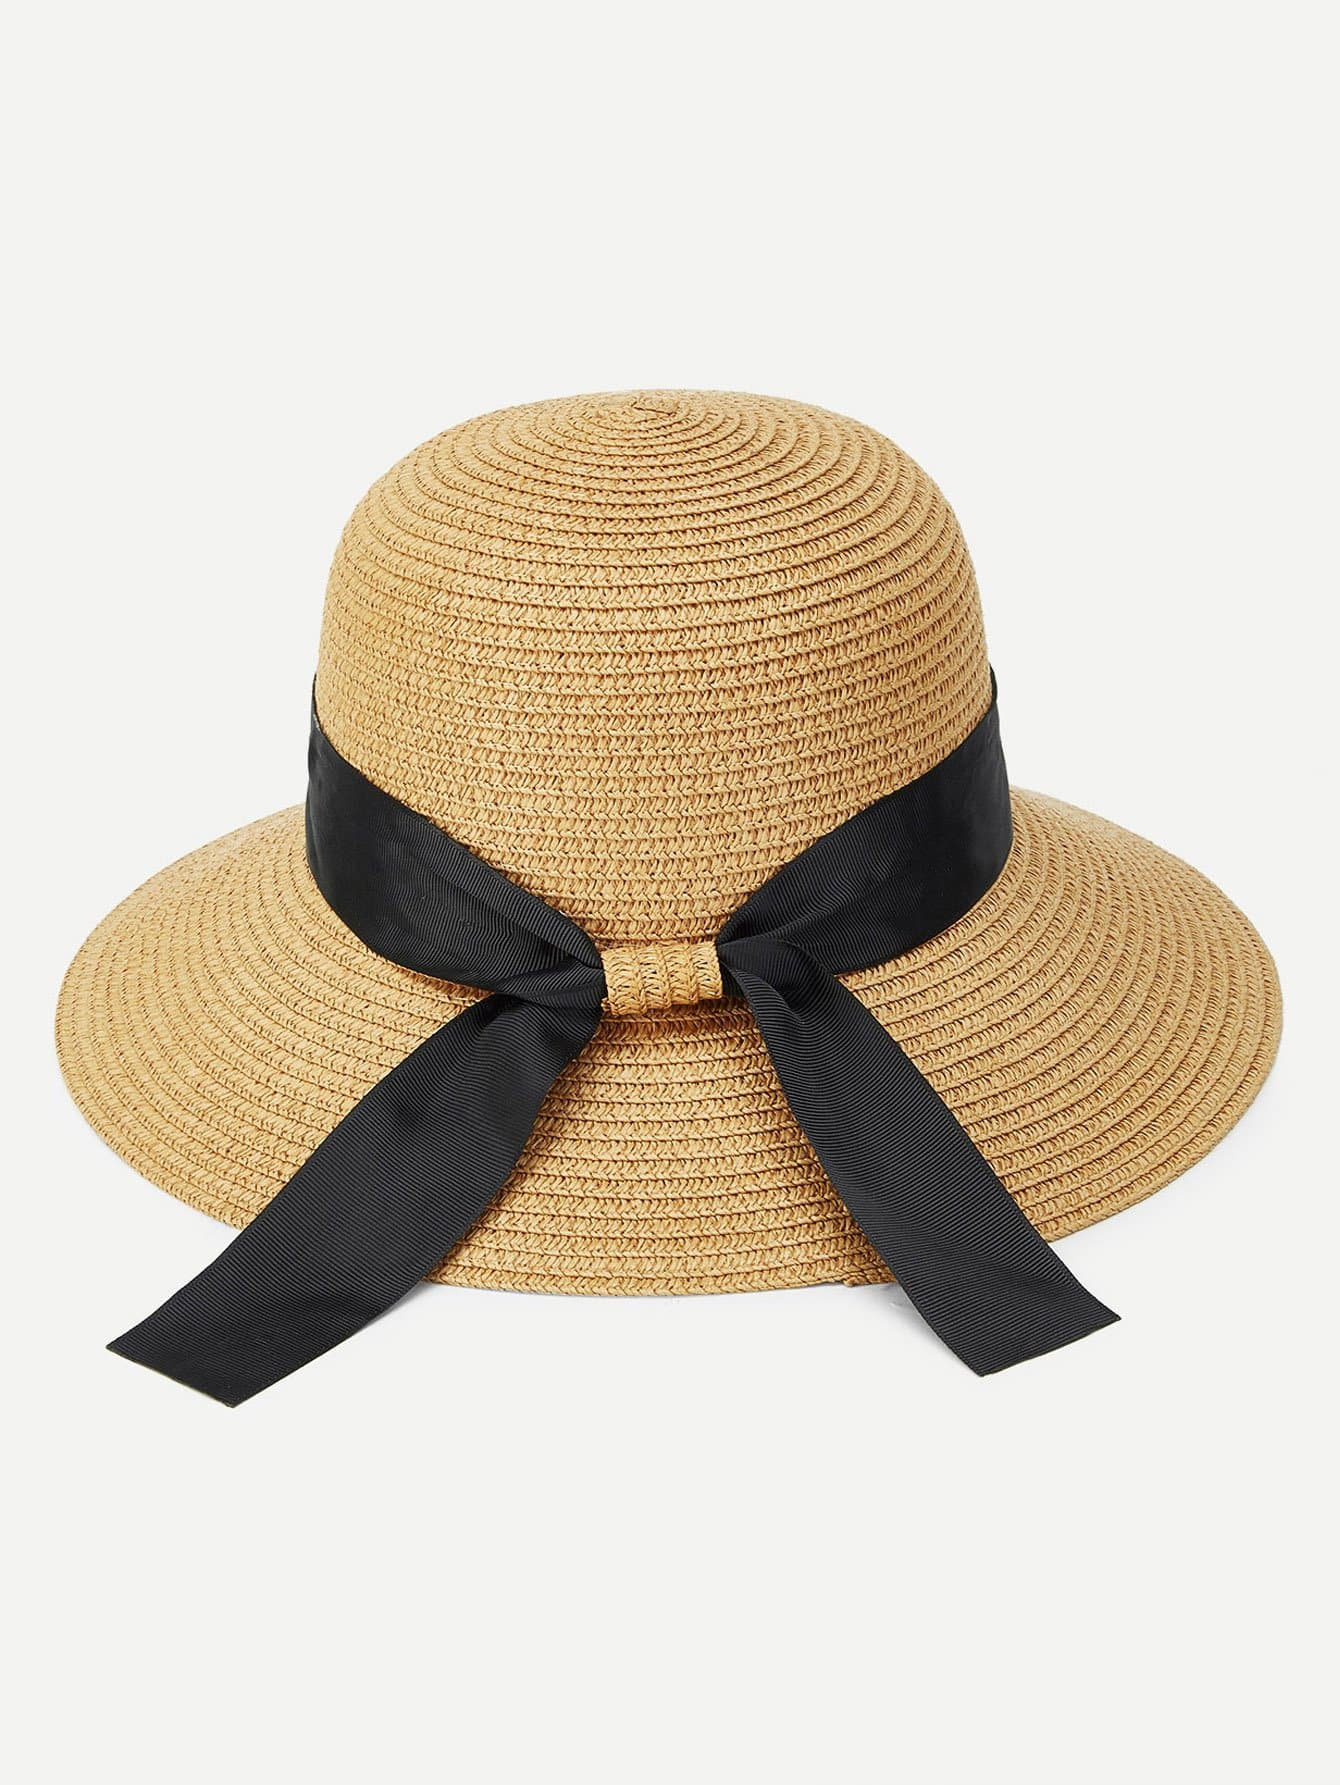 Knot Band Straw Hat knot band straw hat